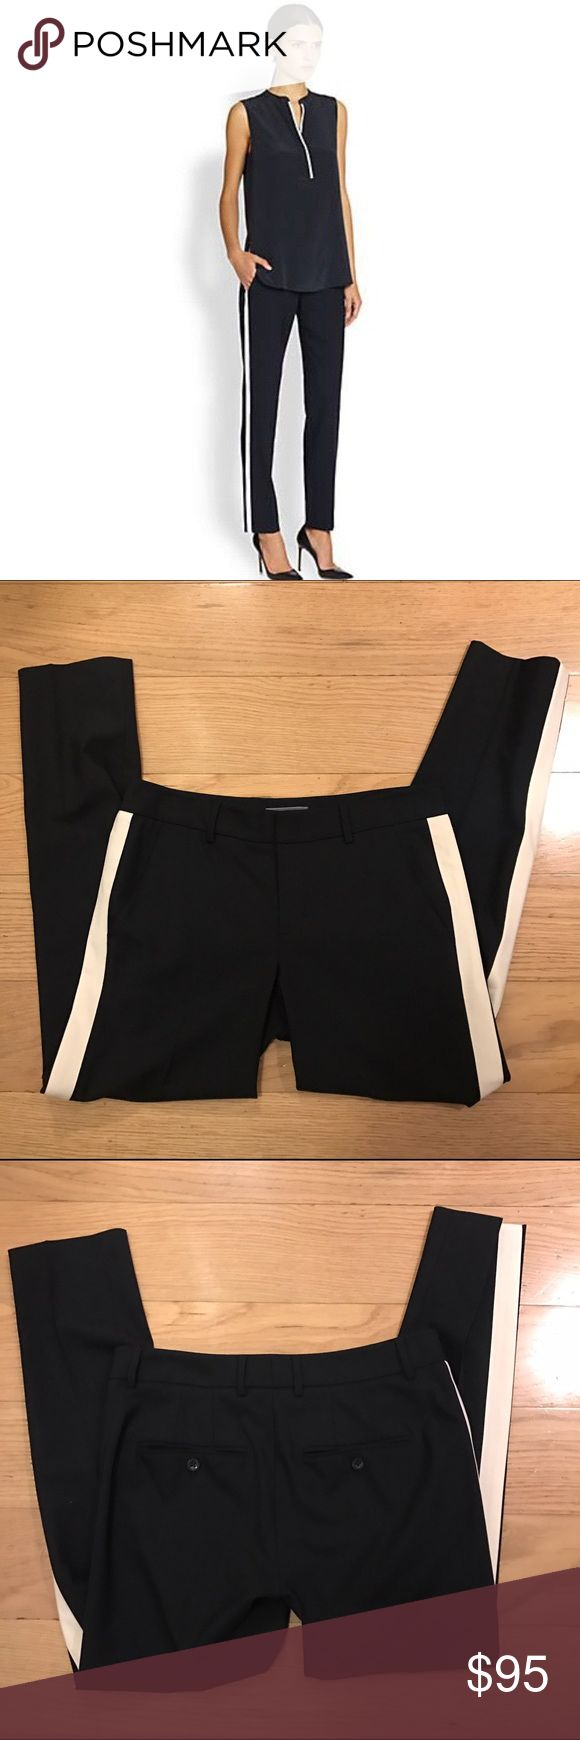 VINCE Tuxedo Stripe Pant Vince Tuxedo Stripe Pant. -Size 4. -Black with beige stripe. -Like new condition.  NO Trades. Please make all offers through offer button. Vince Pants